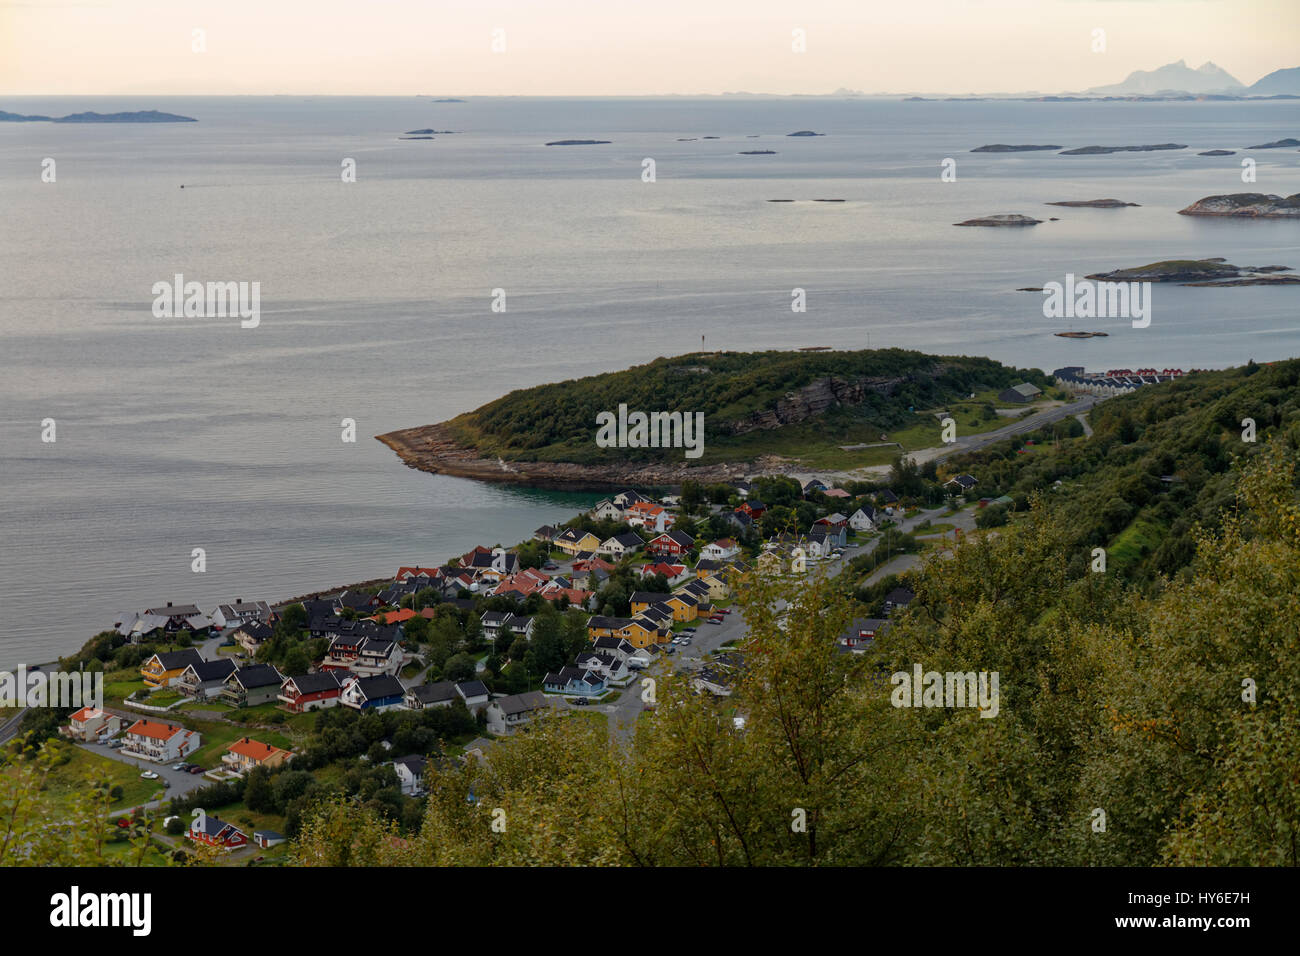 View over Löpsmarka, near Bodø, Norway - Stock Image